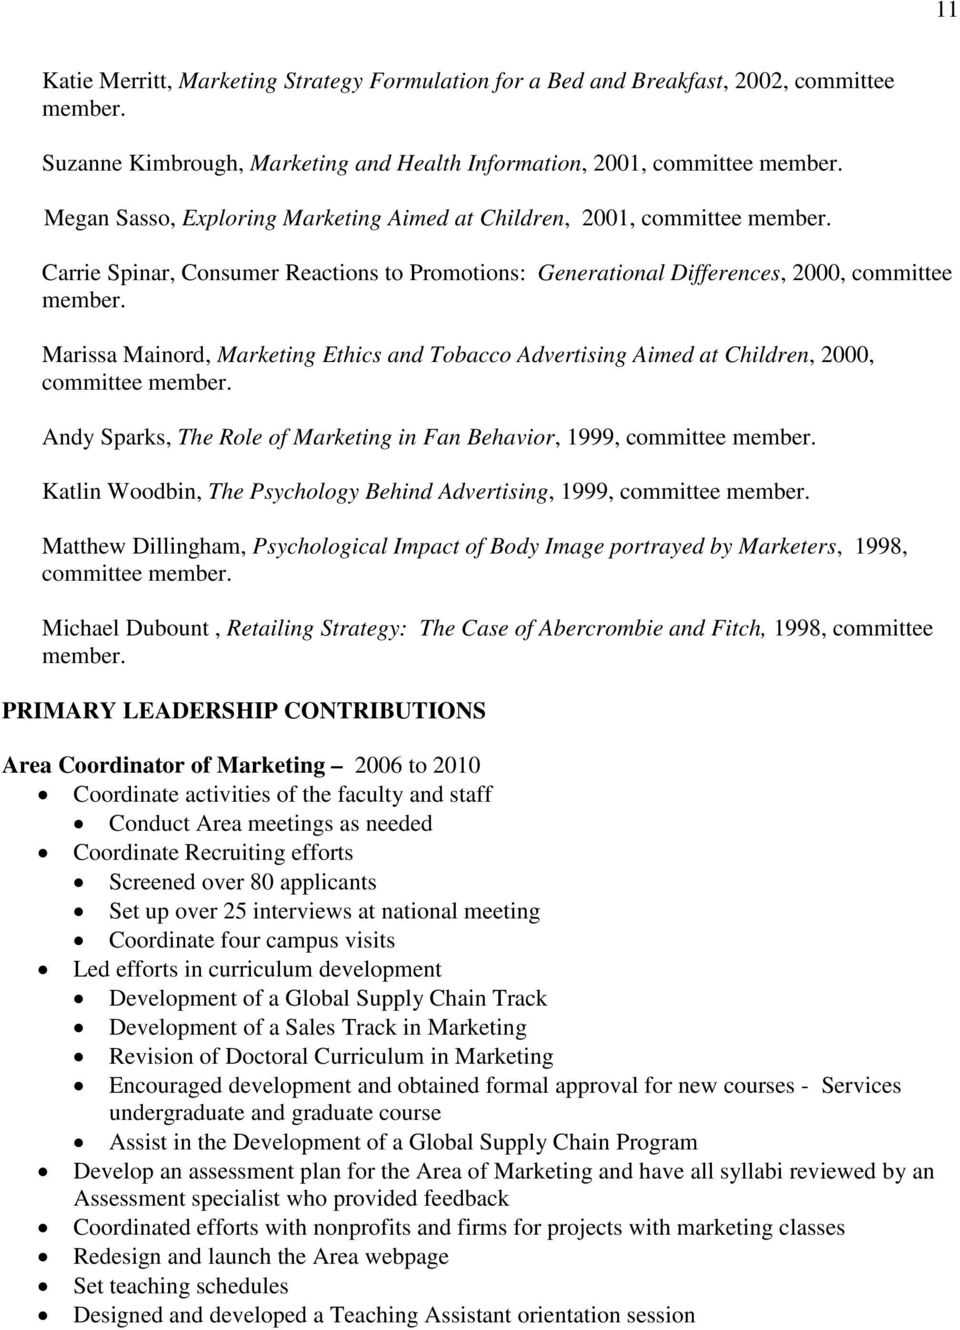 Marissa Mainord, Marketing Ethics and Tobacco Advertising Aimed at Children, 2000, committee member. Andy Sparks, The Role of Marketing in Fan Behavior, 1999, committee member.